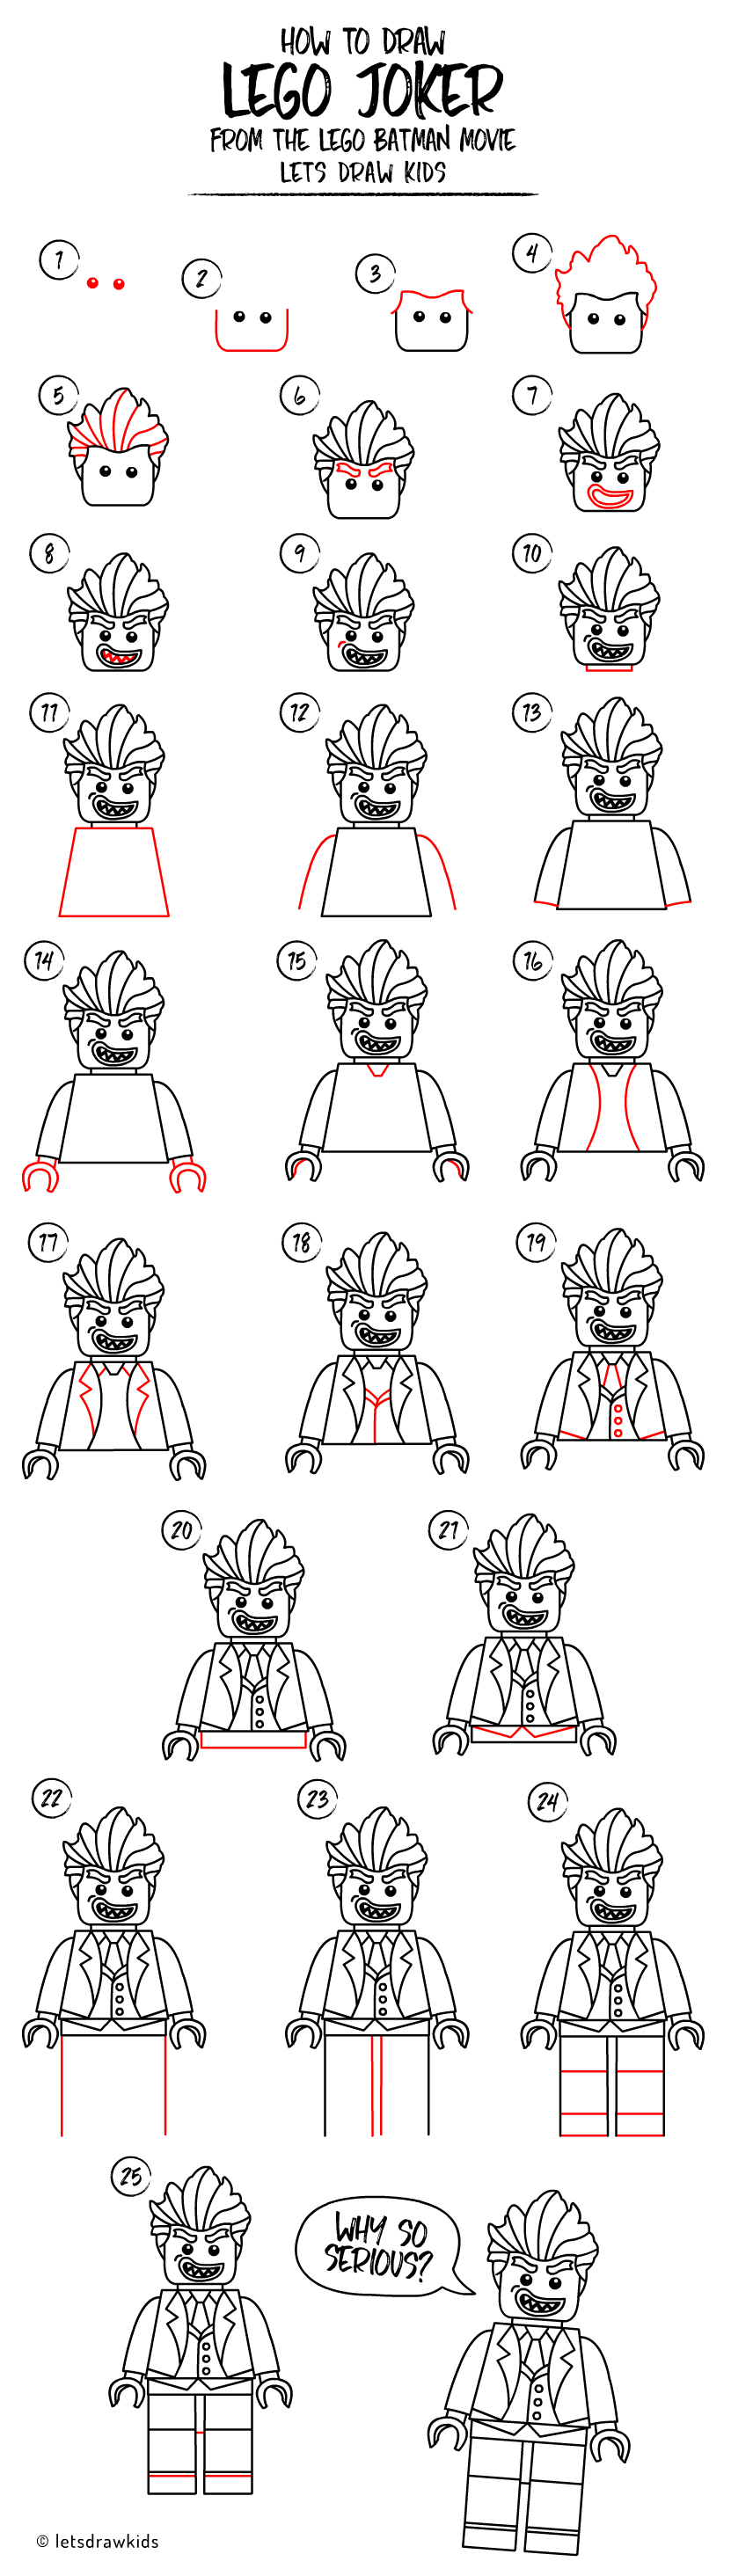 How To Draw Lego Joker Easy Drawing, Step By Step, Perfect For Kids